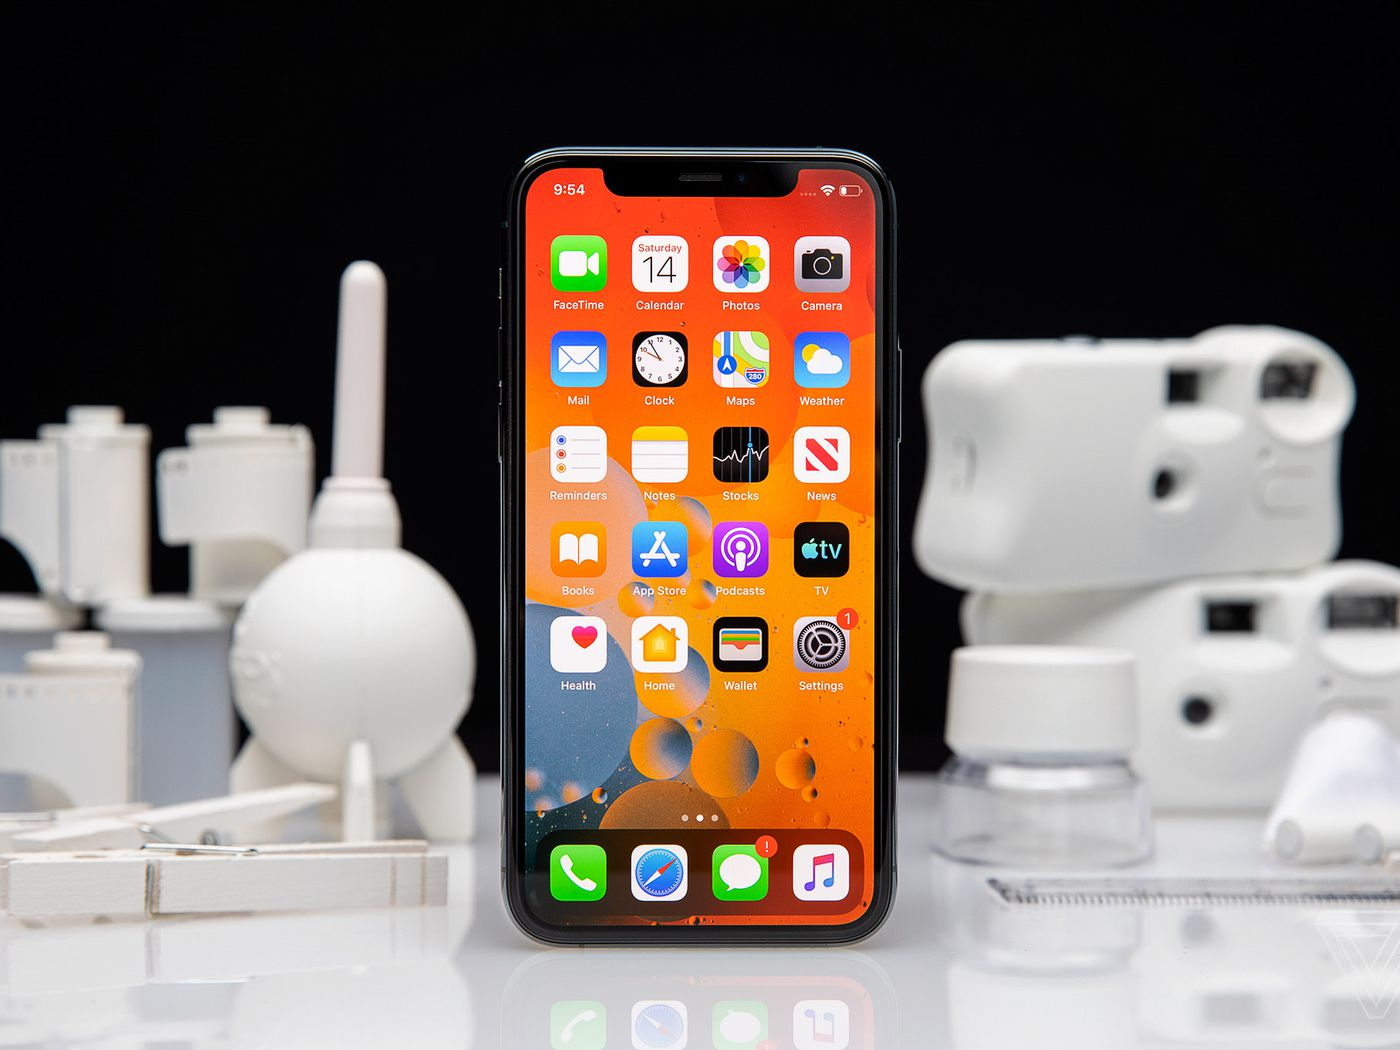 Iphone 12 Everything We Think We Know About Apple S 2020 5g Iphones Which Could Be Announced On October 13th The Verge